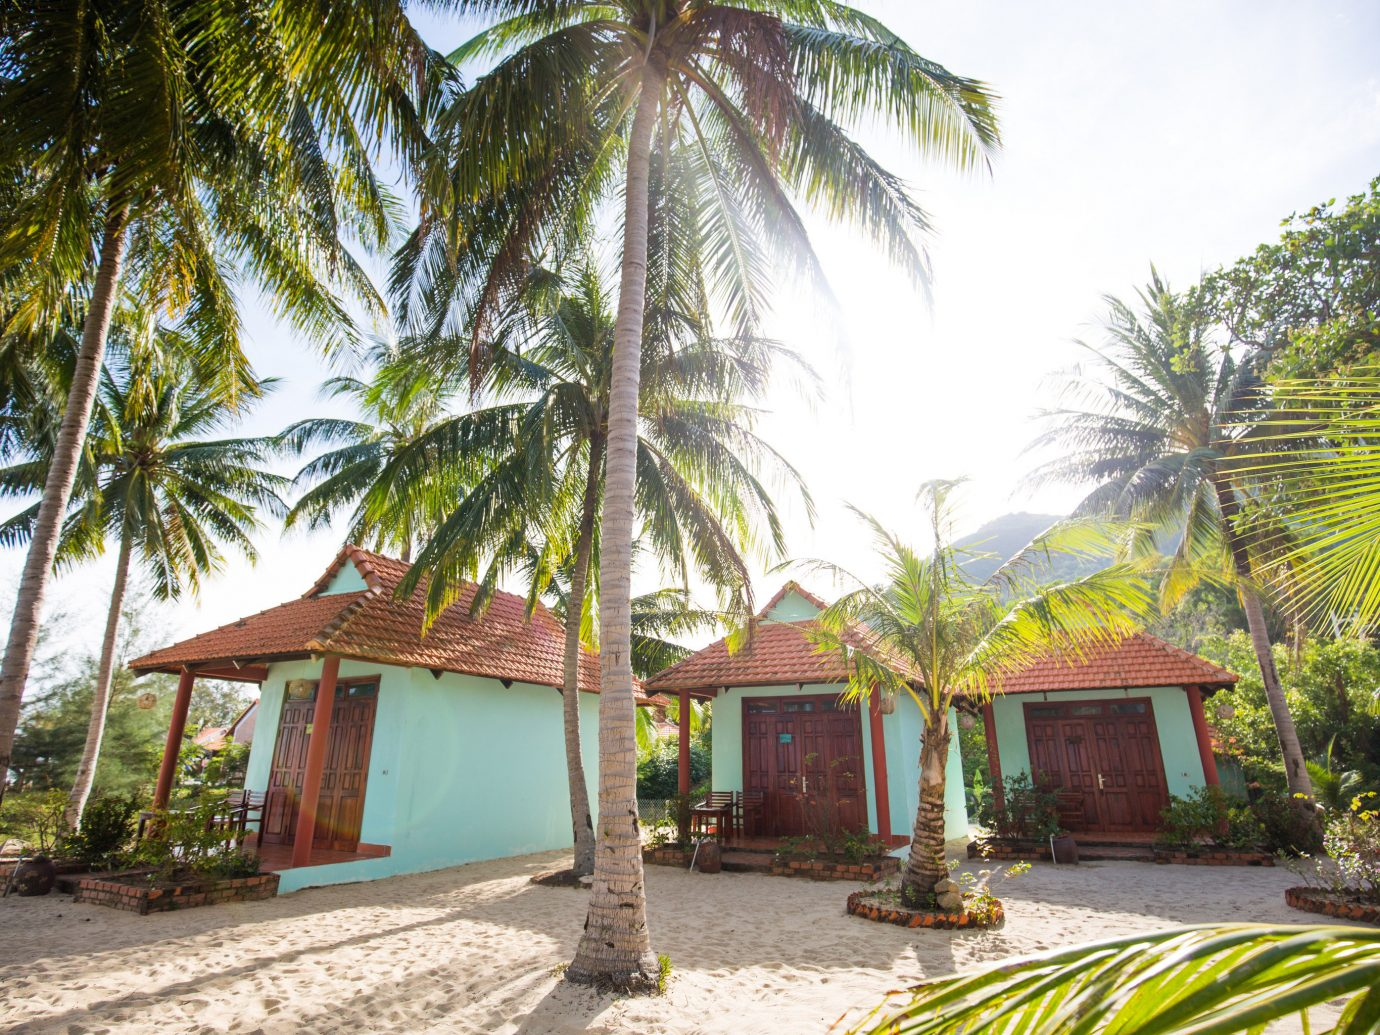 Solo Travel Trip Ideas tree outdoor ground plant Resort property palm caribbean vacation arecales estate real estate Jungle tropics eco hotel hacienda Villa Village palm family shade